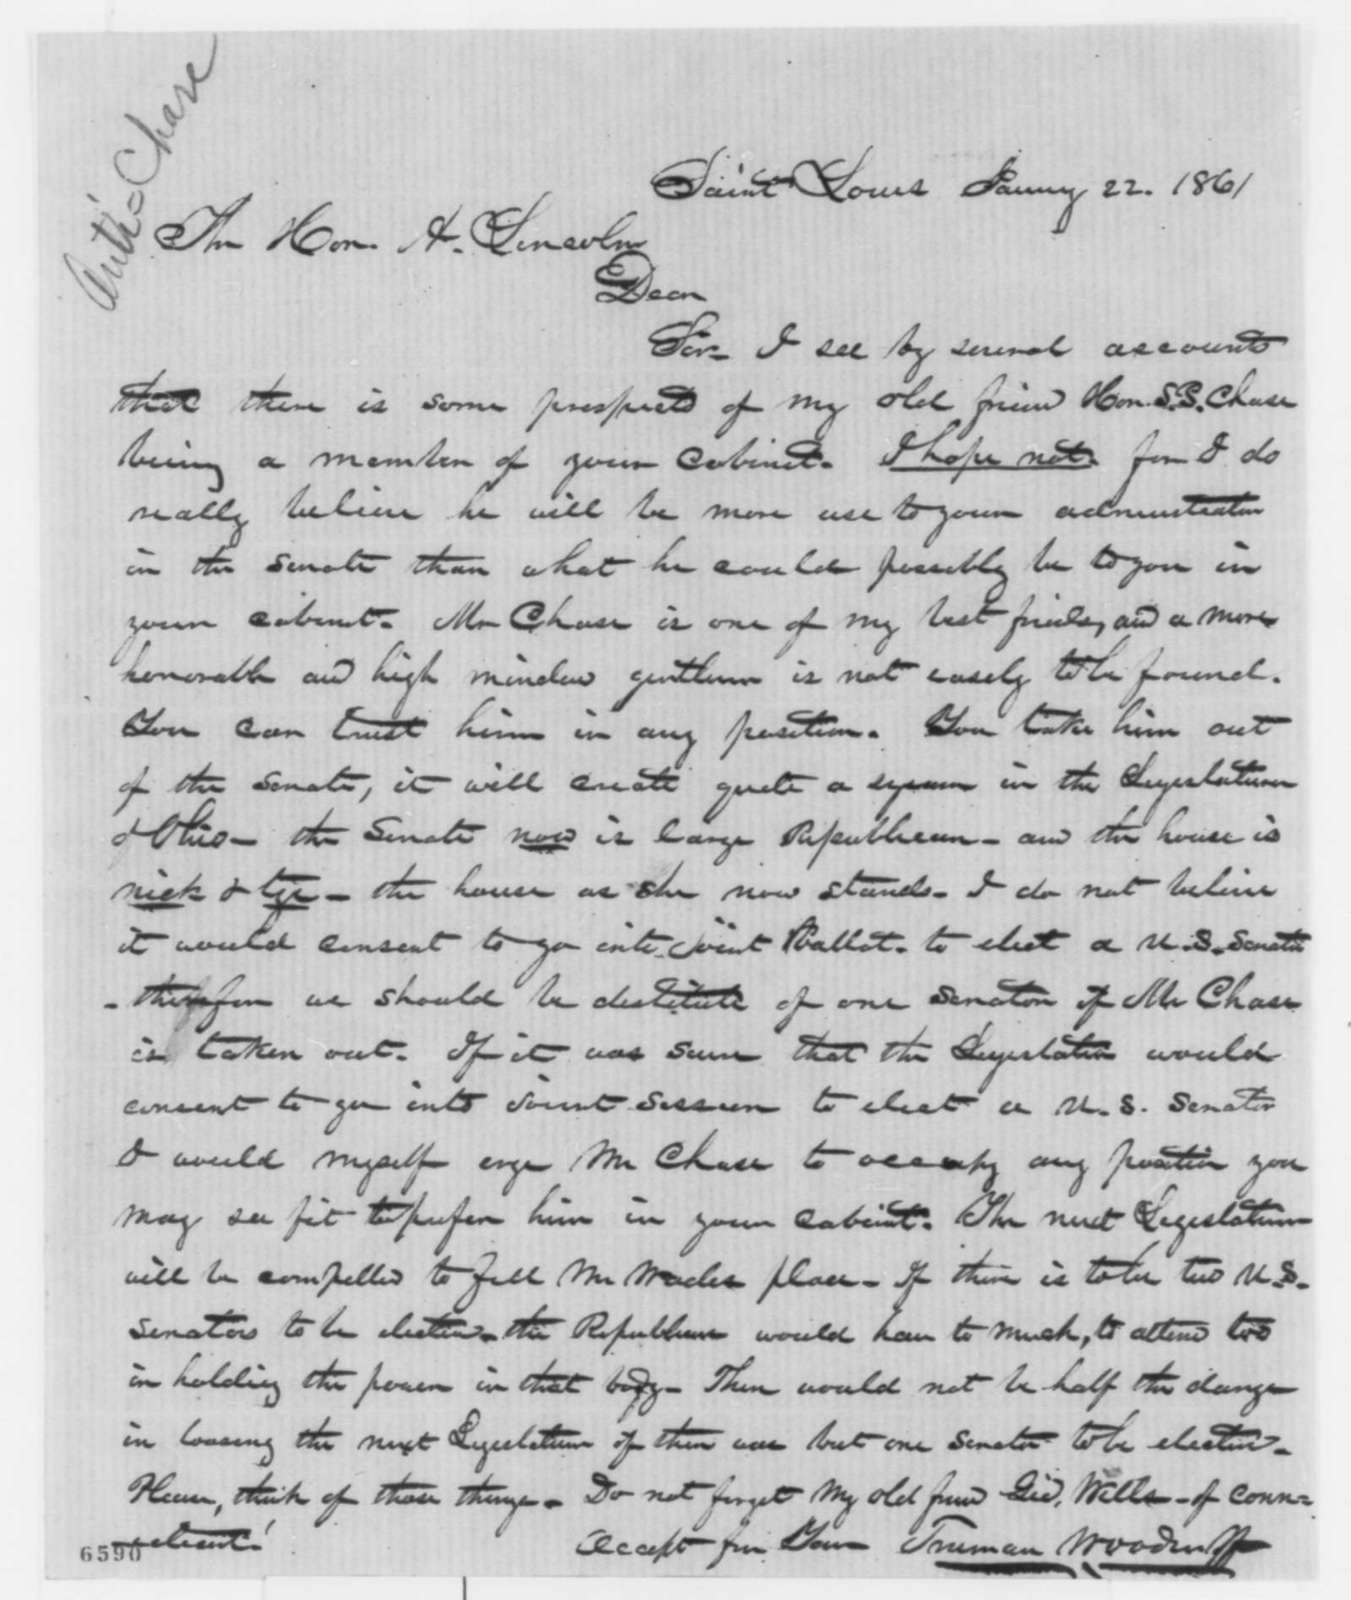 Truman Woodruff to Abraham Lincoln, Tuesday, January 22, 1861  (Chase more valuable in Senate than in cabinet)